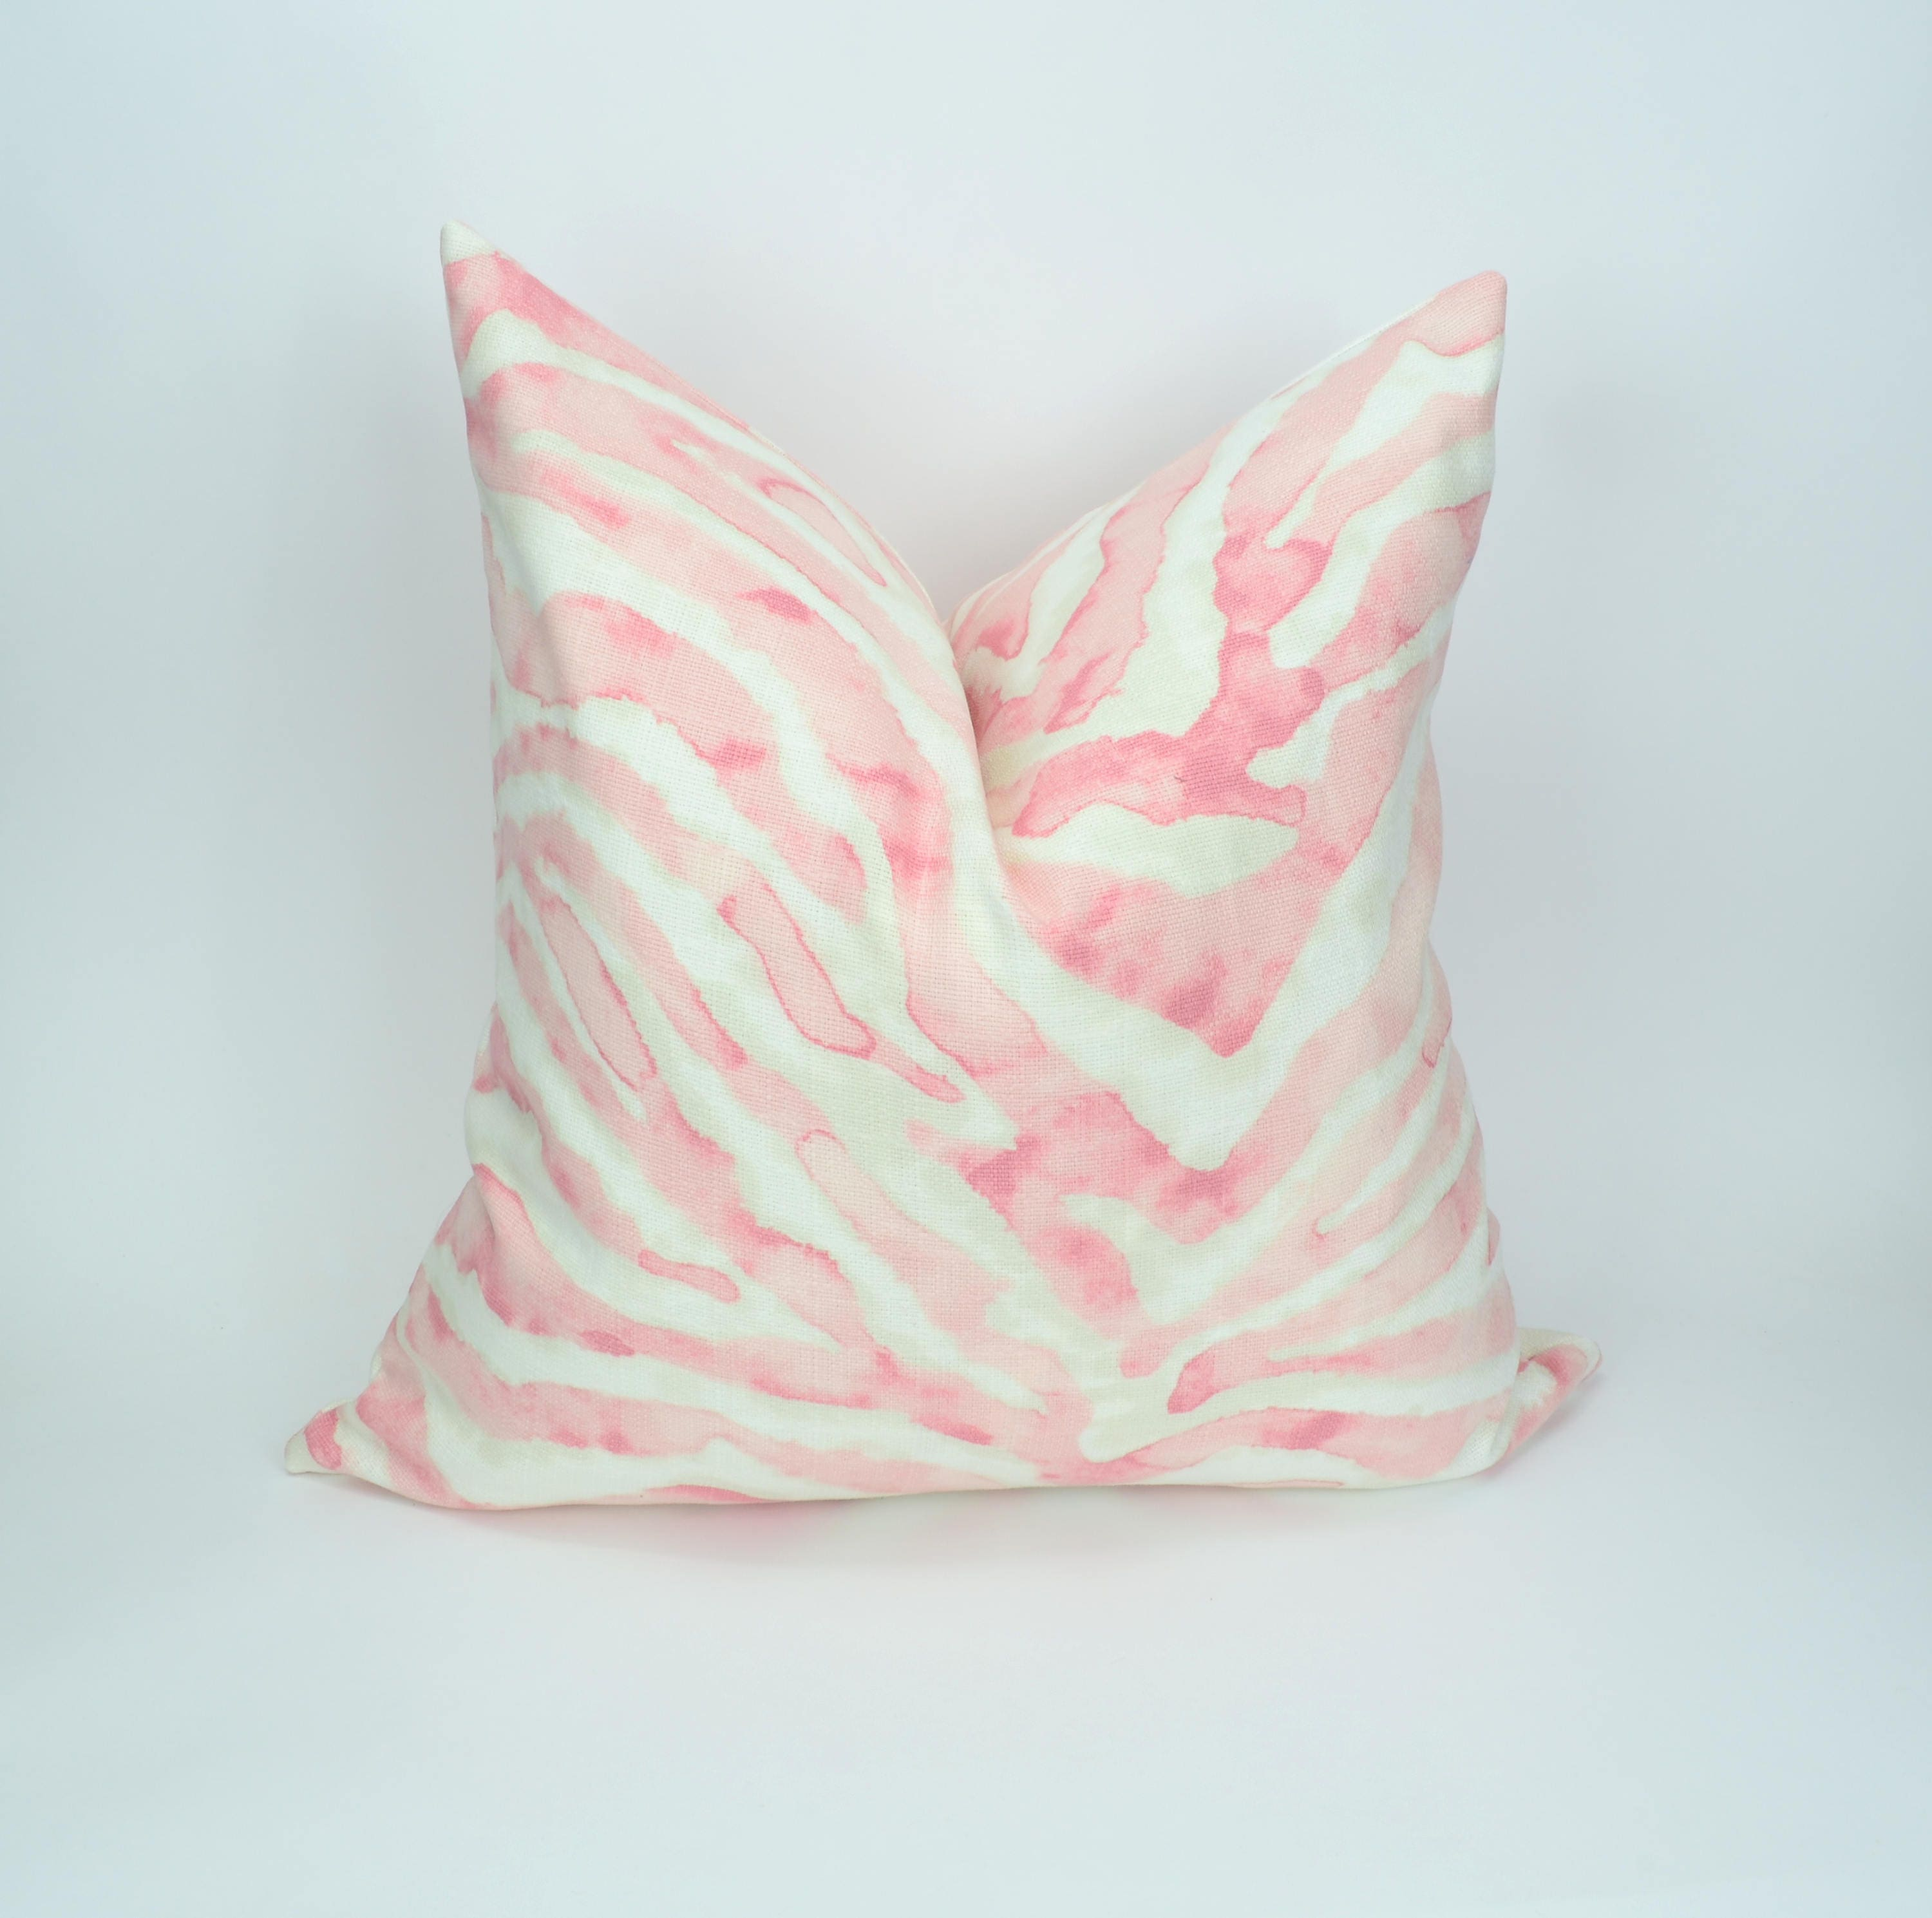 cushion pillow art soft en inner products support pillows ullkaktus its shape throw holds cm and rugs your filling pale body polyester gb the gives ikea pink textiles cushions